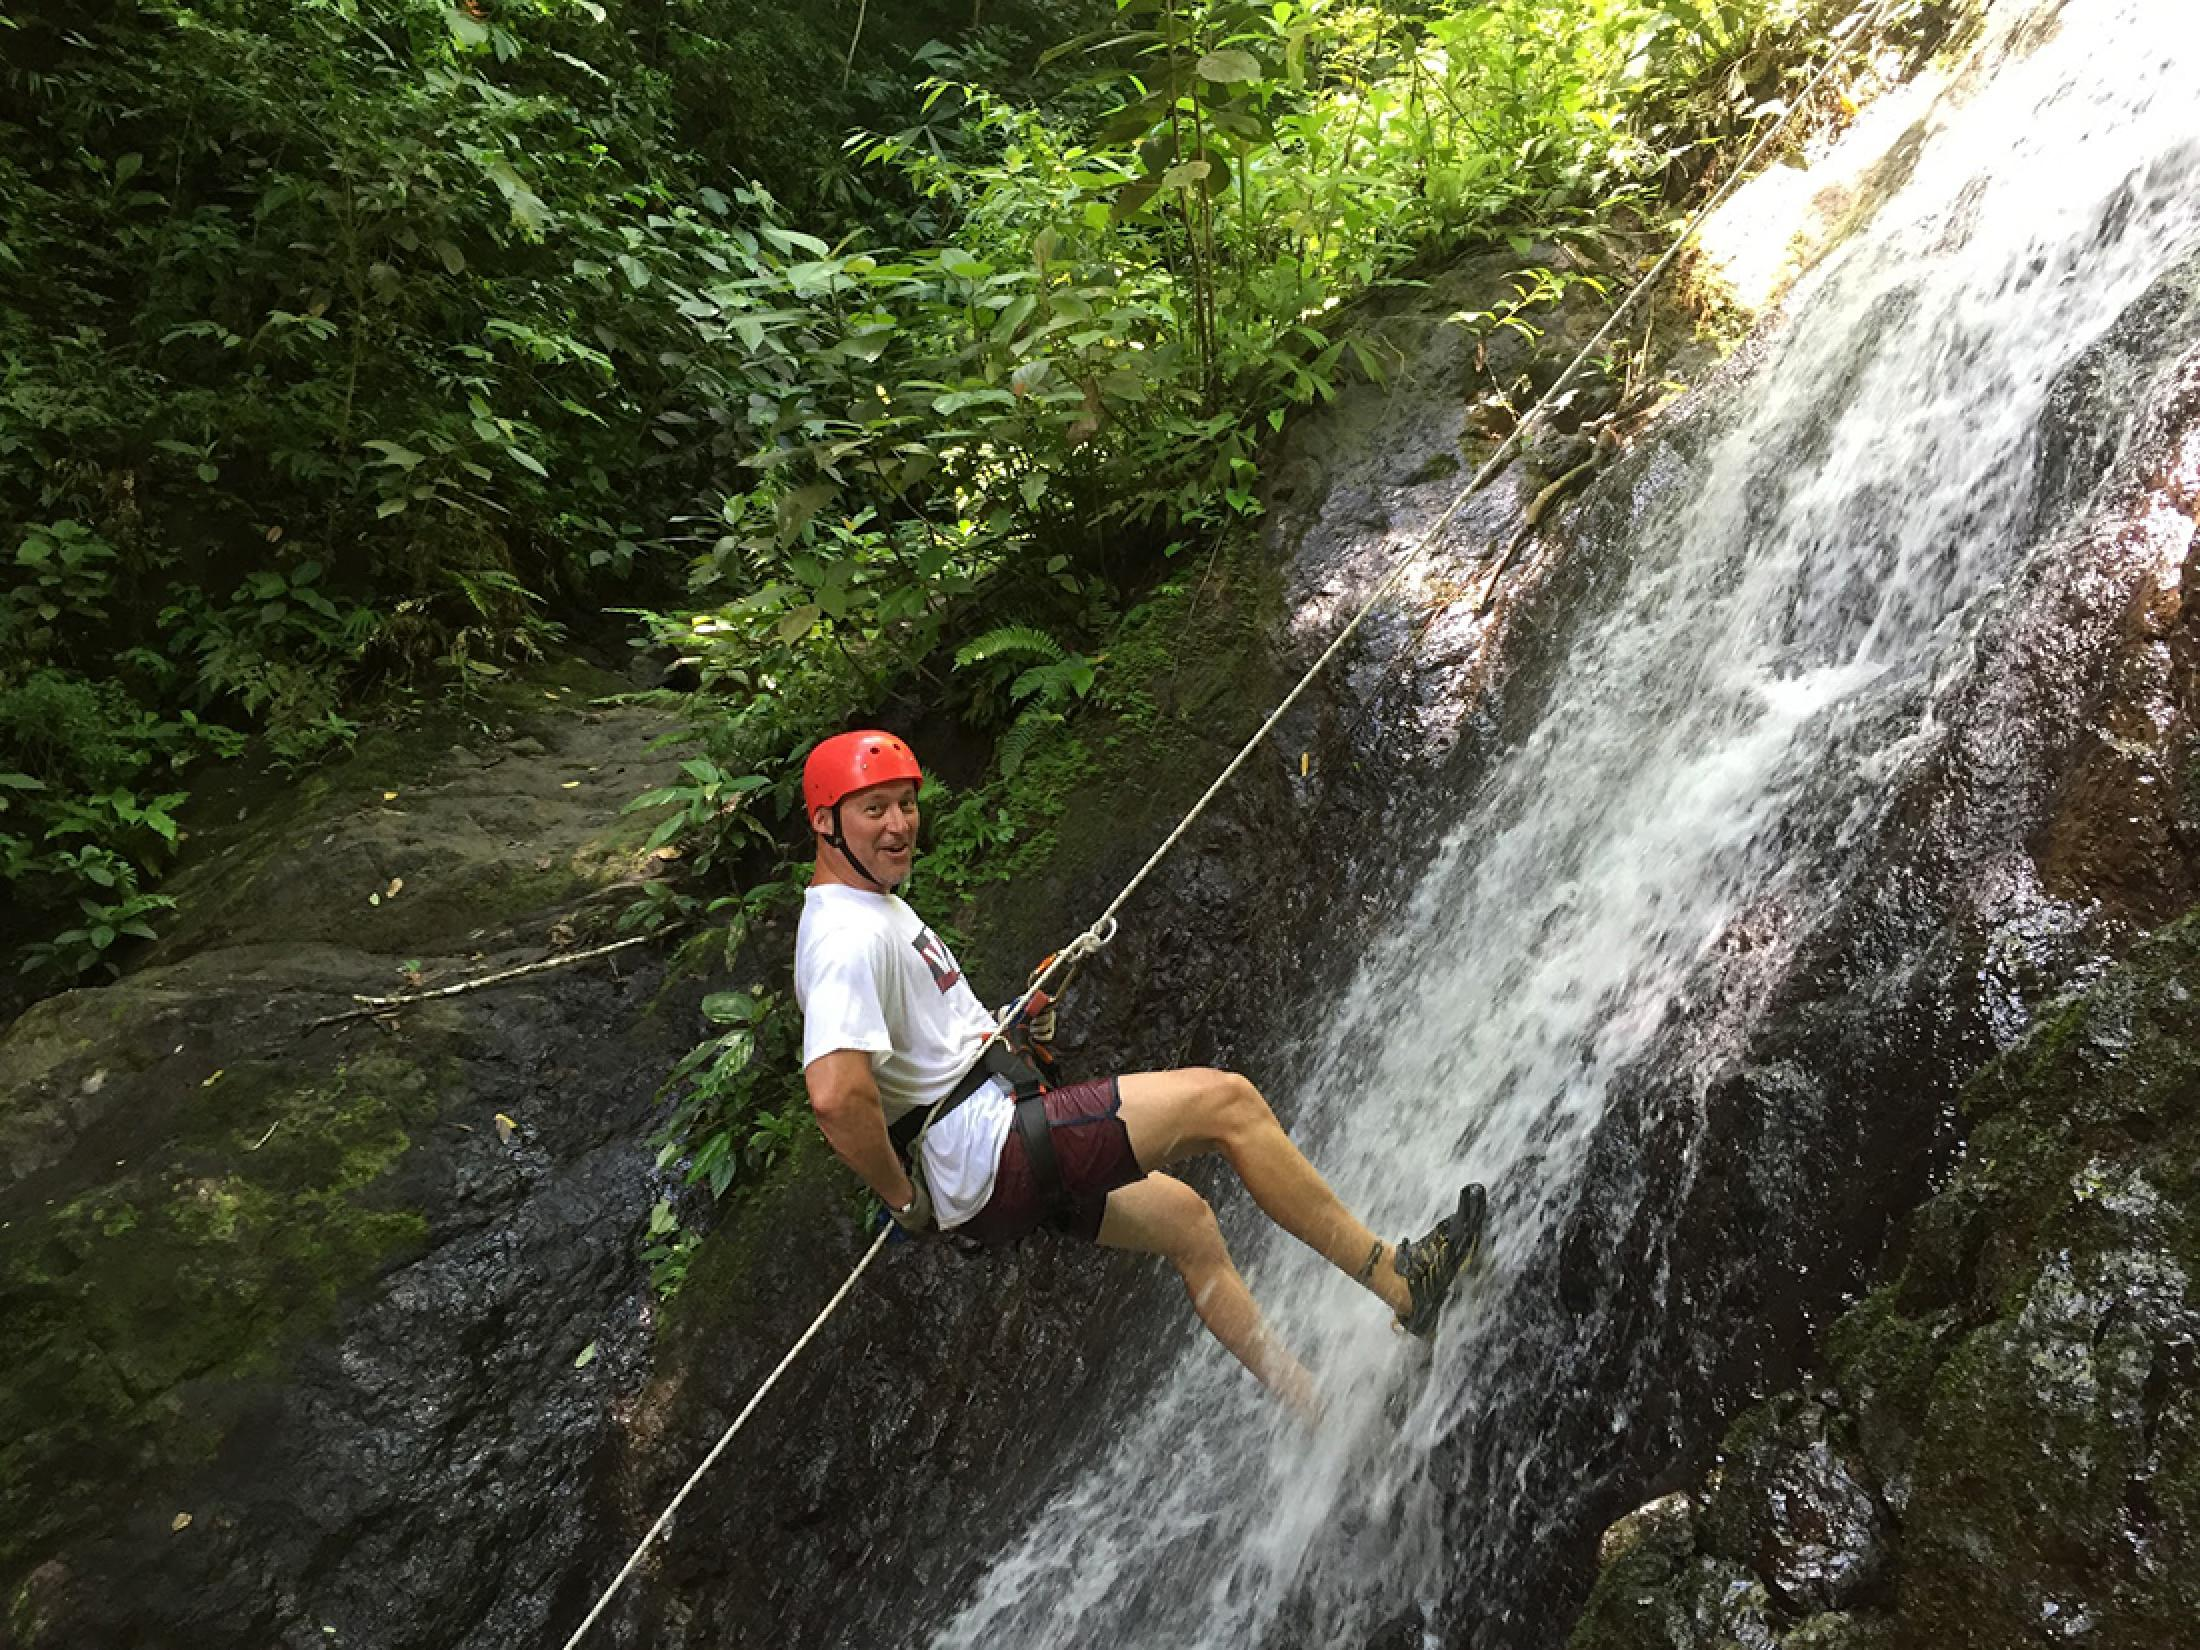 Zip Line and Waterfall Rpelling